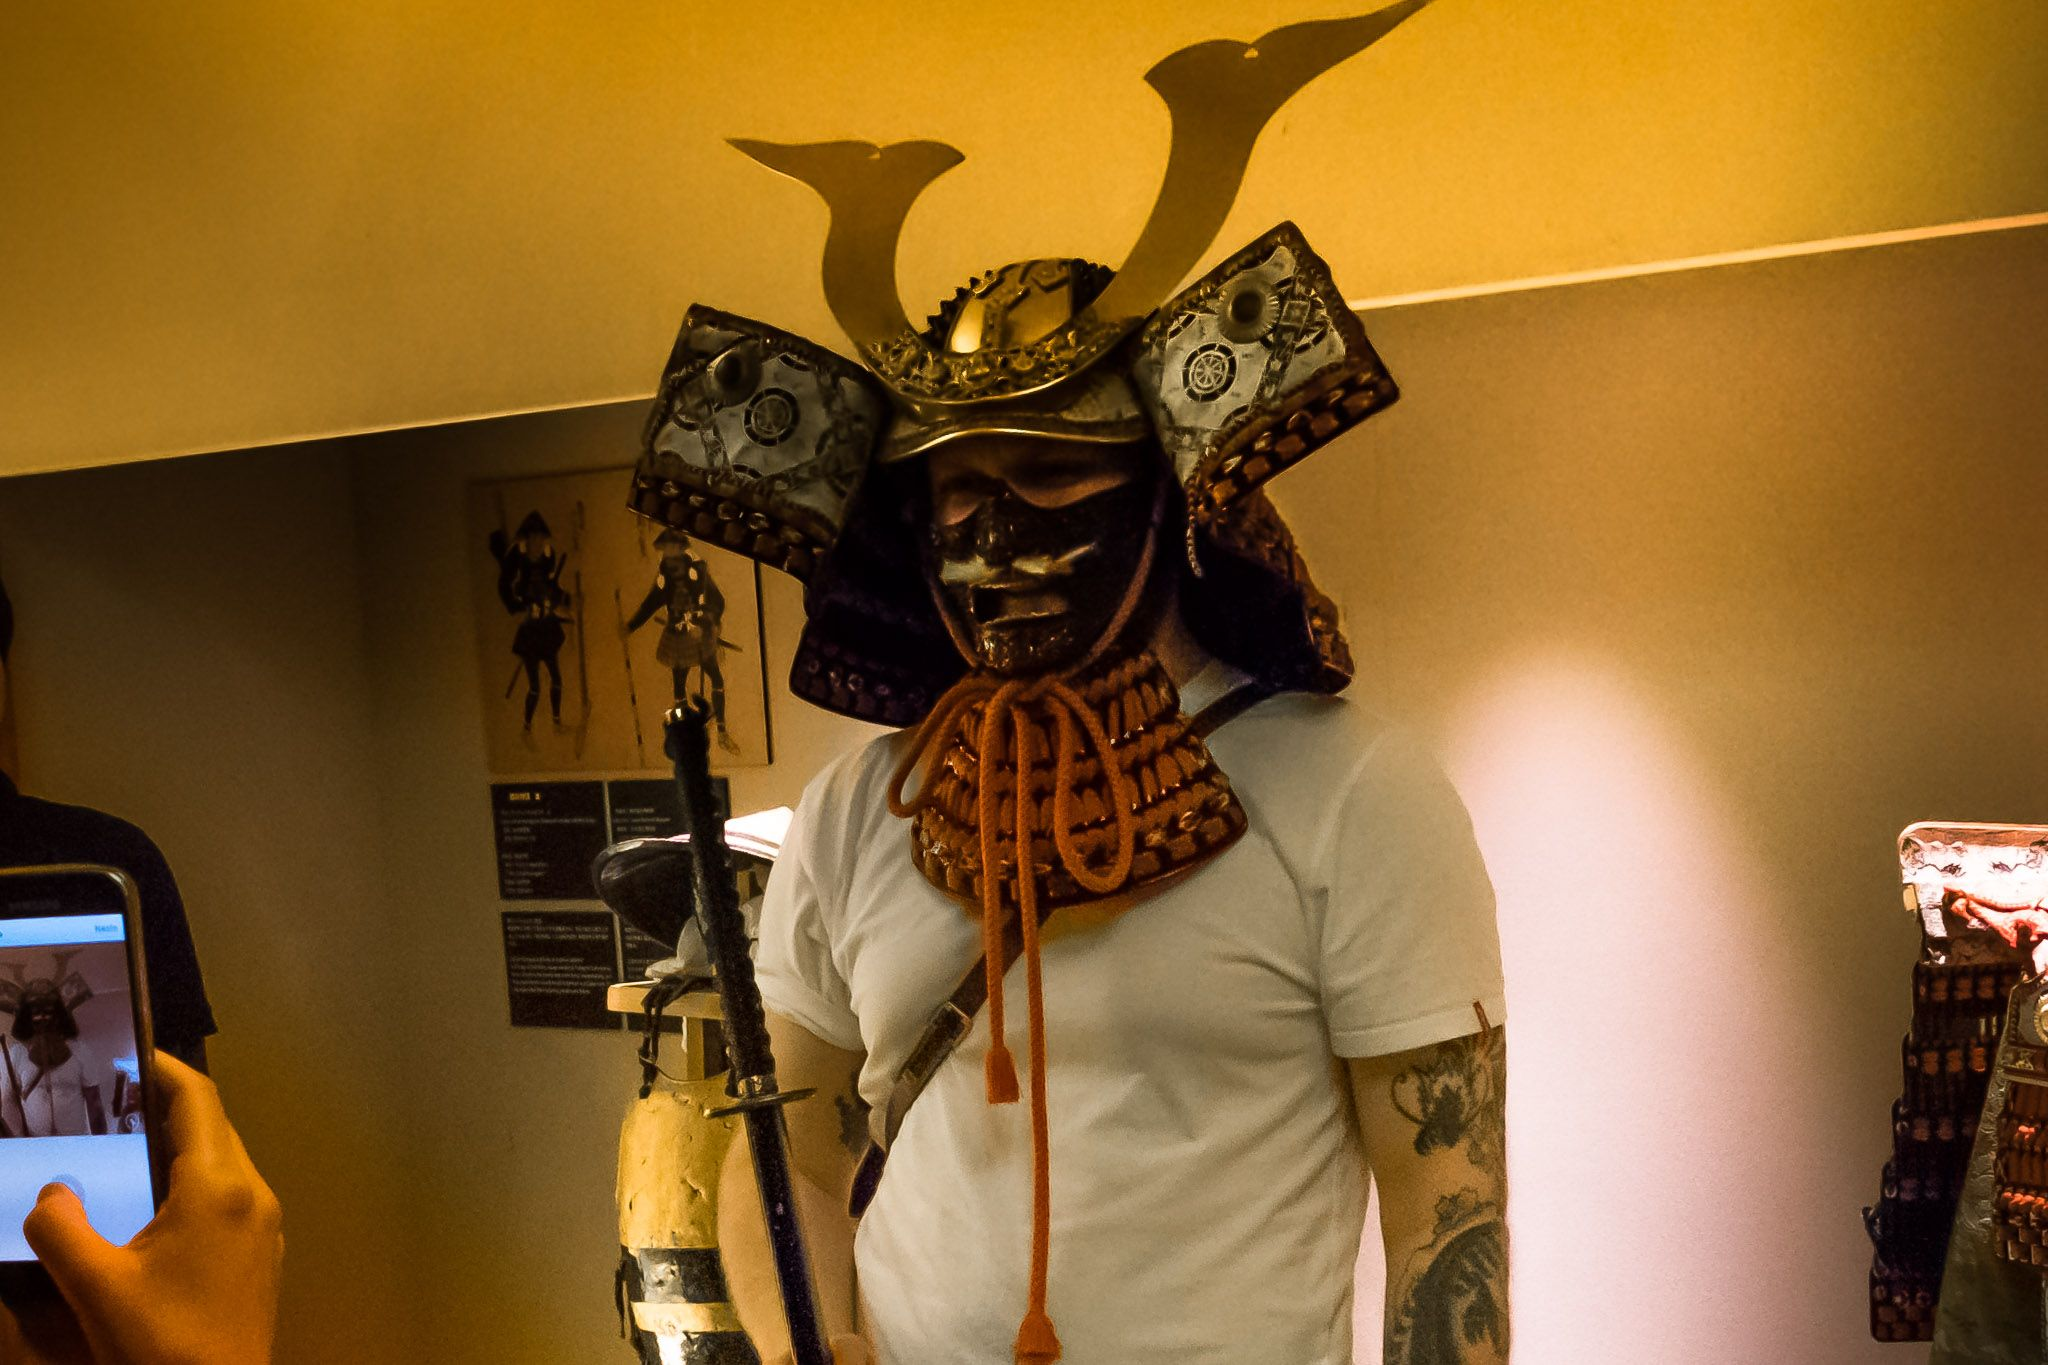 a participant trying on samurai gear